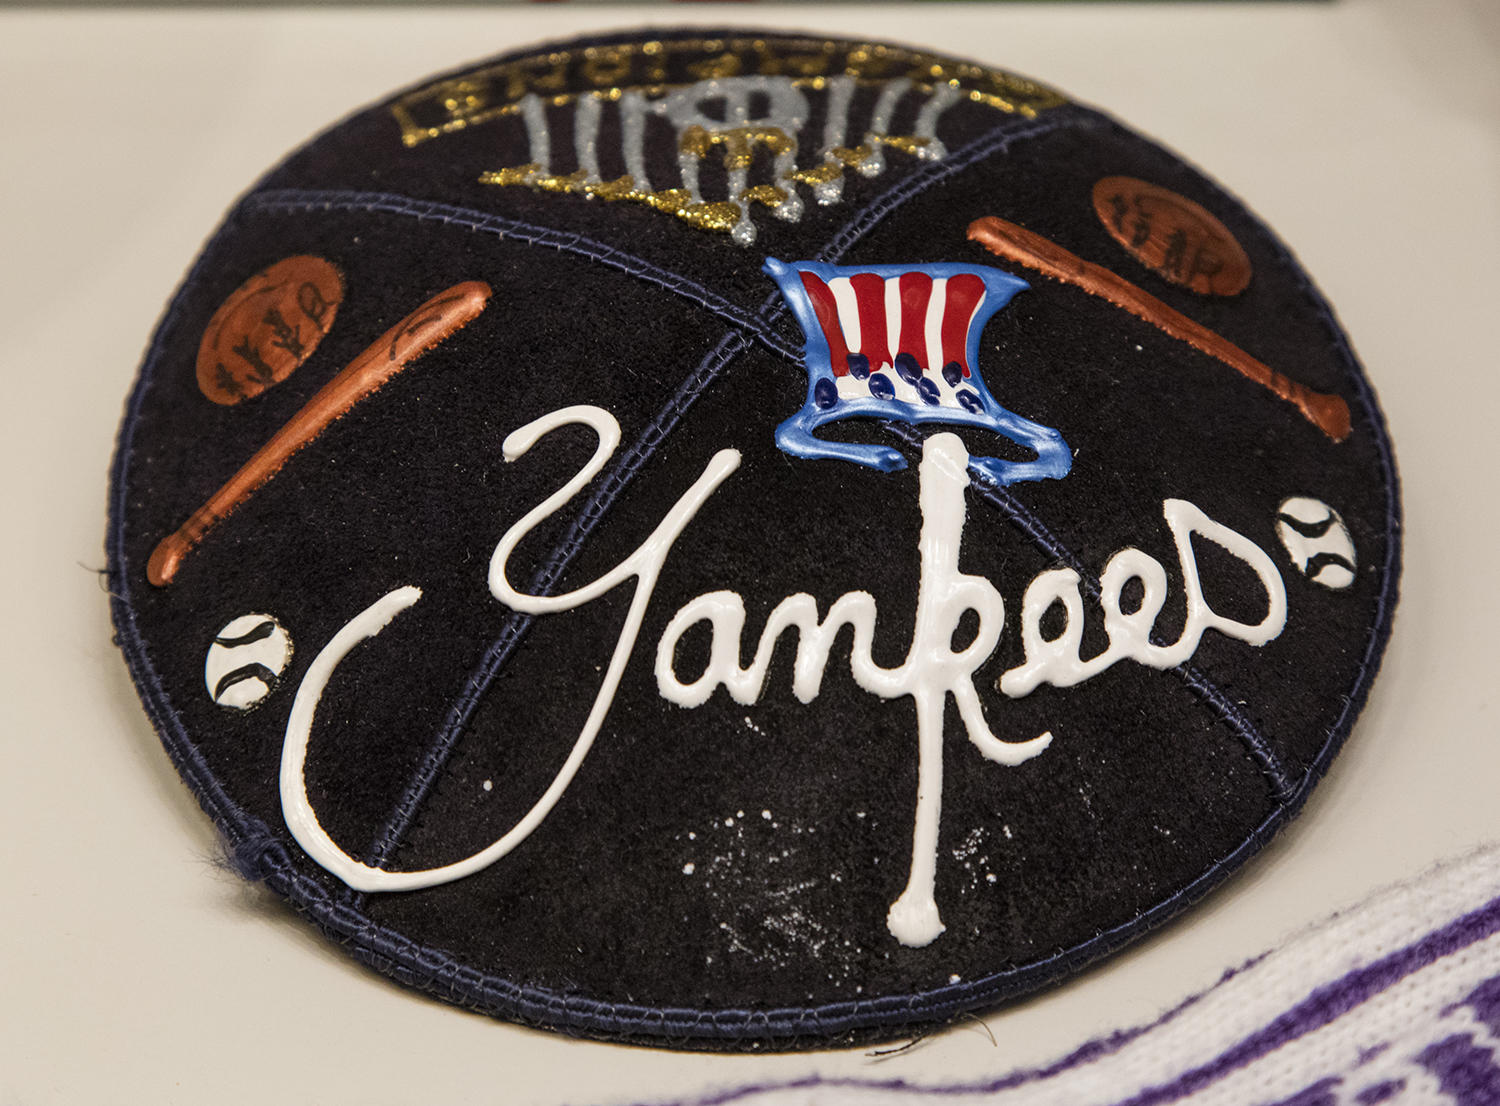 A Yankees-themed yarmulke, donated shortly after the New York Yankees won the World Series in 2000, is currently on display in the <em>Whole New Ballgame</em> exhibit. (Milo Stewart Jr. / National Baseball Hall of Fame)